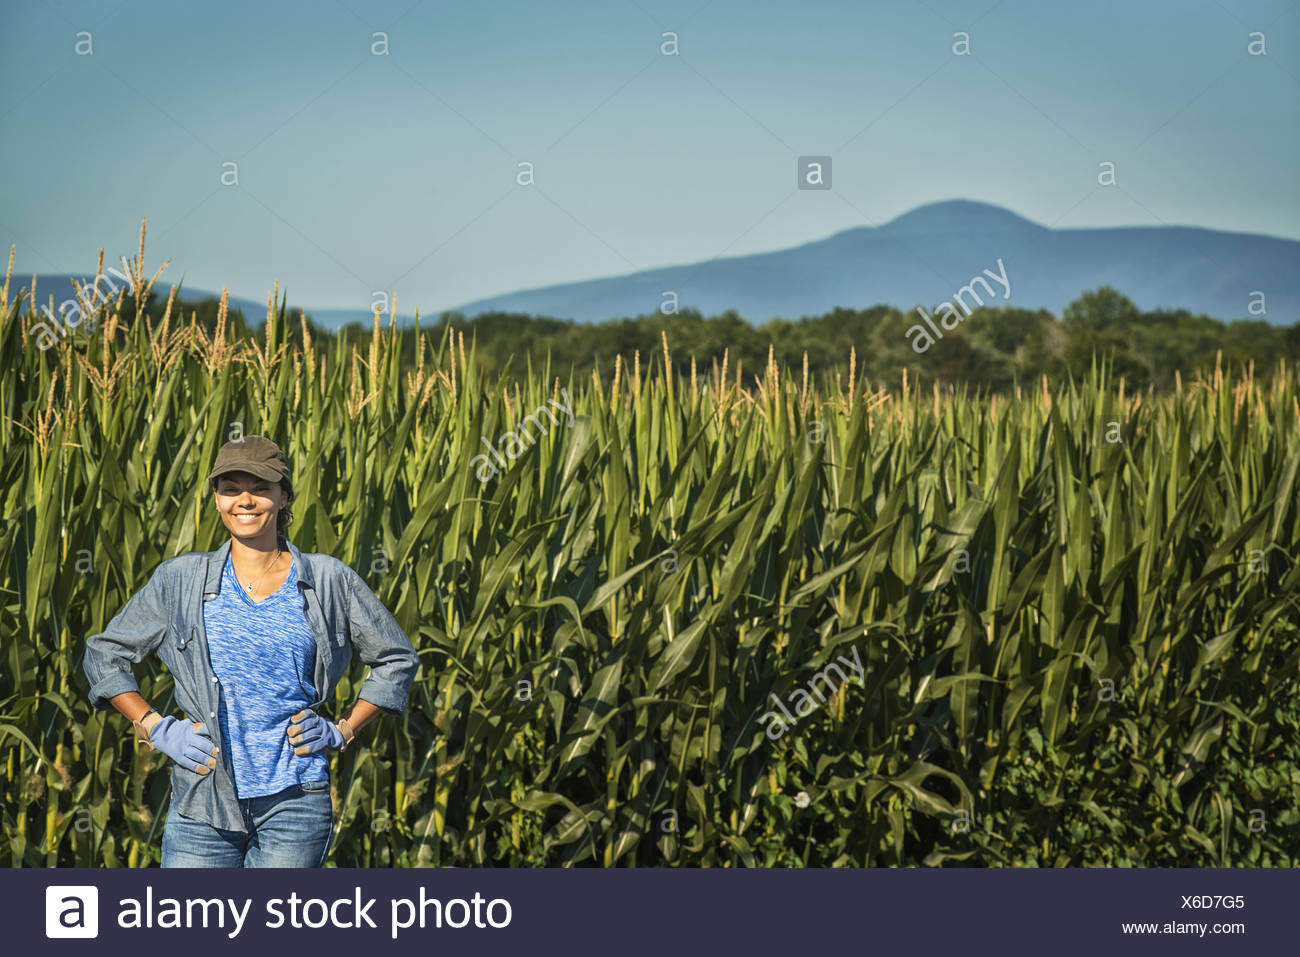 New York state USA field of tall maize plants towering over woman - Stock Image